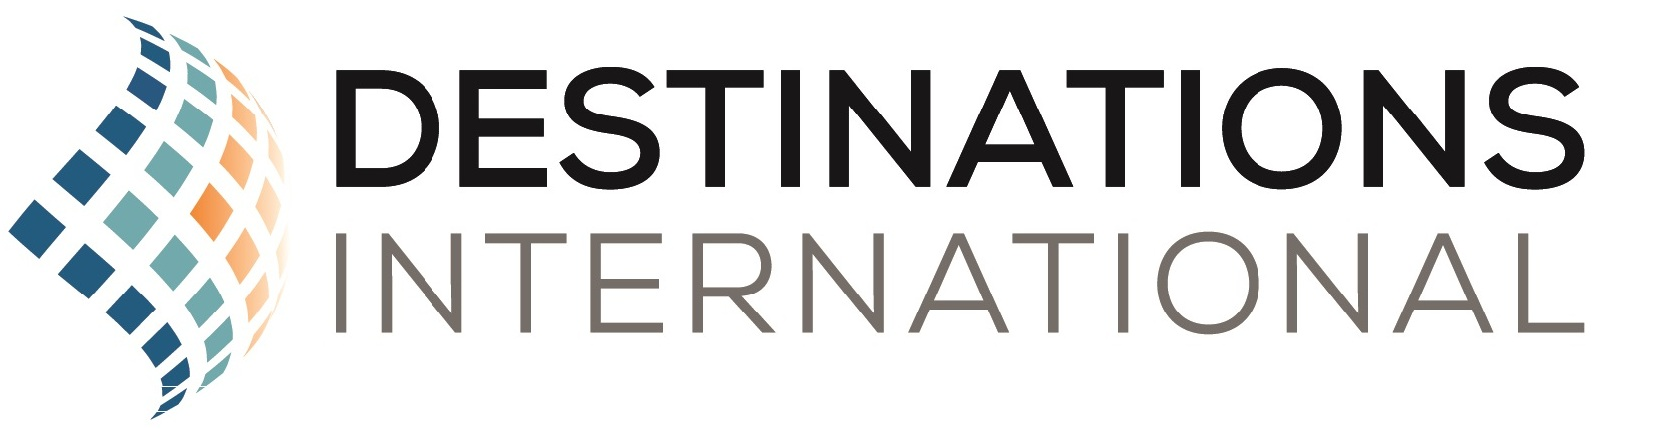 Destinations+International+Logo+Edit.jpg